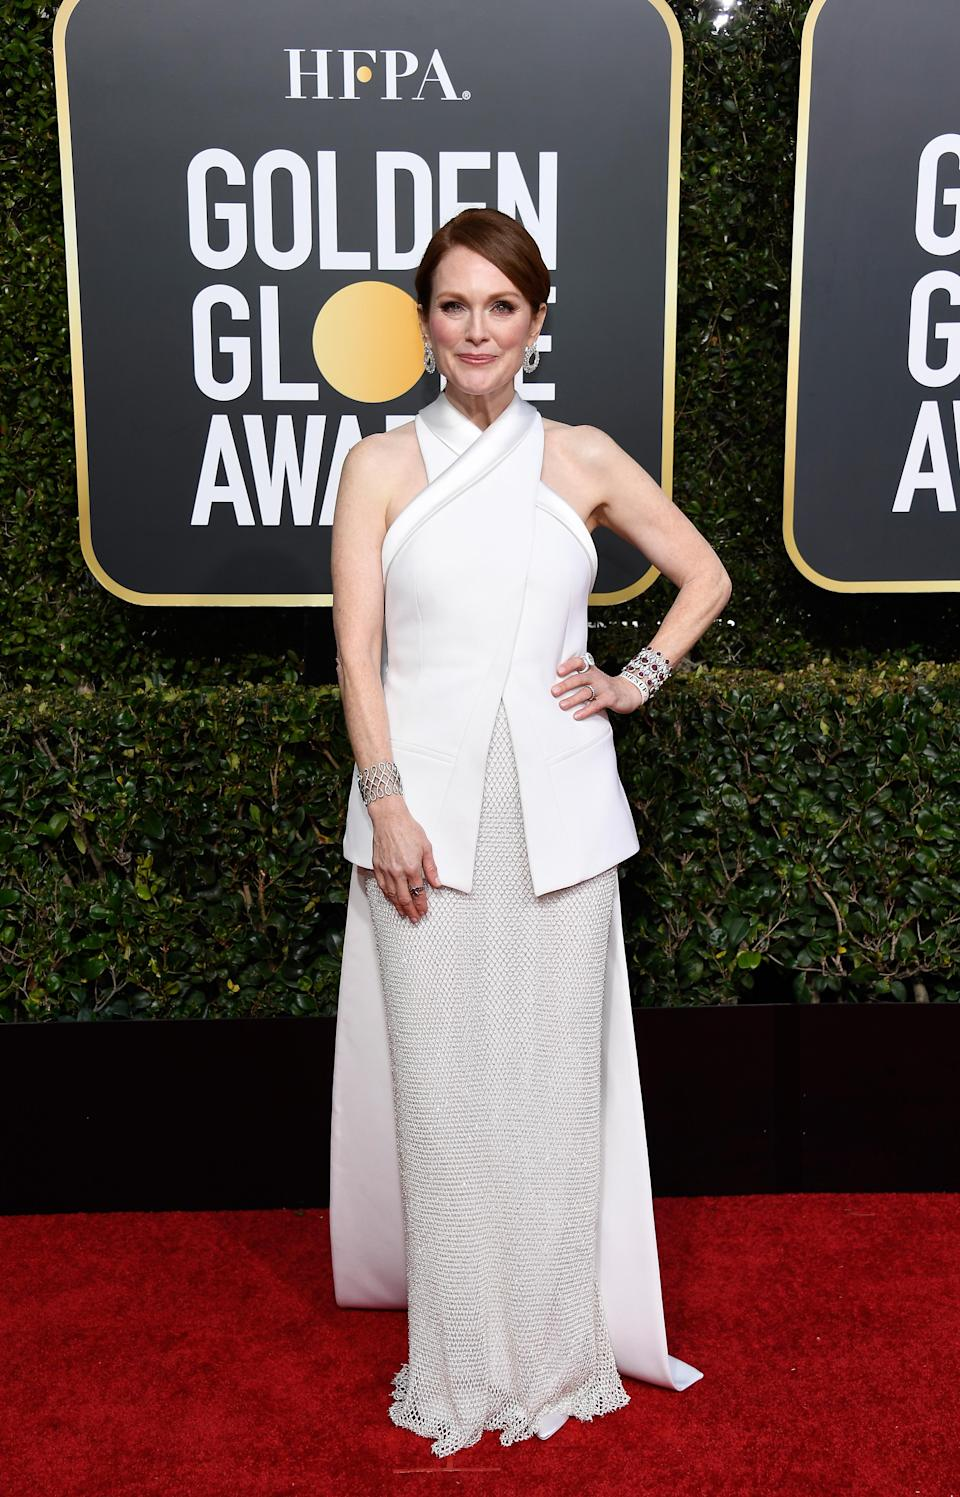 <p>Moore wore a fashion forward white ensemble by Givenchy.<br>Image via Getty Images. </p>